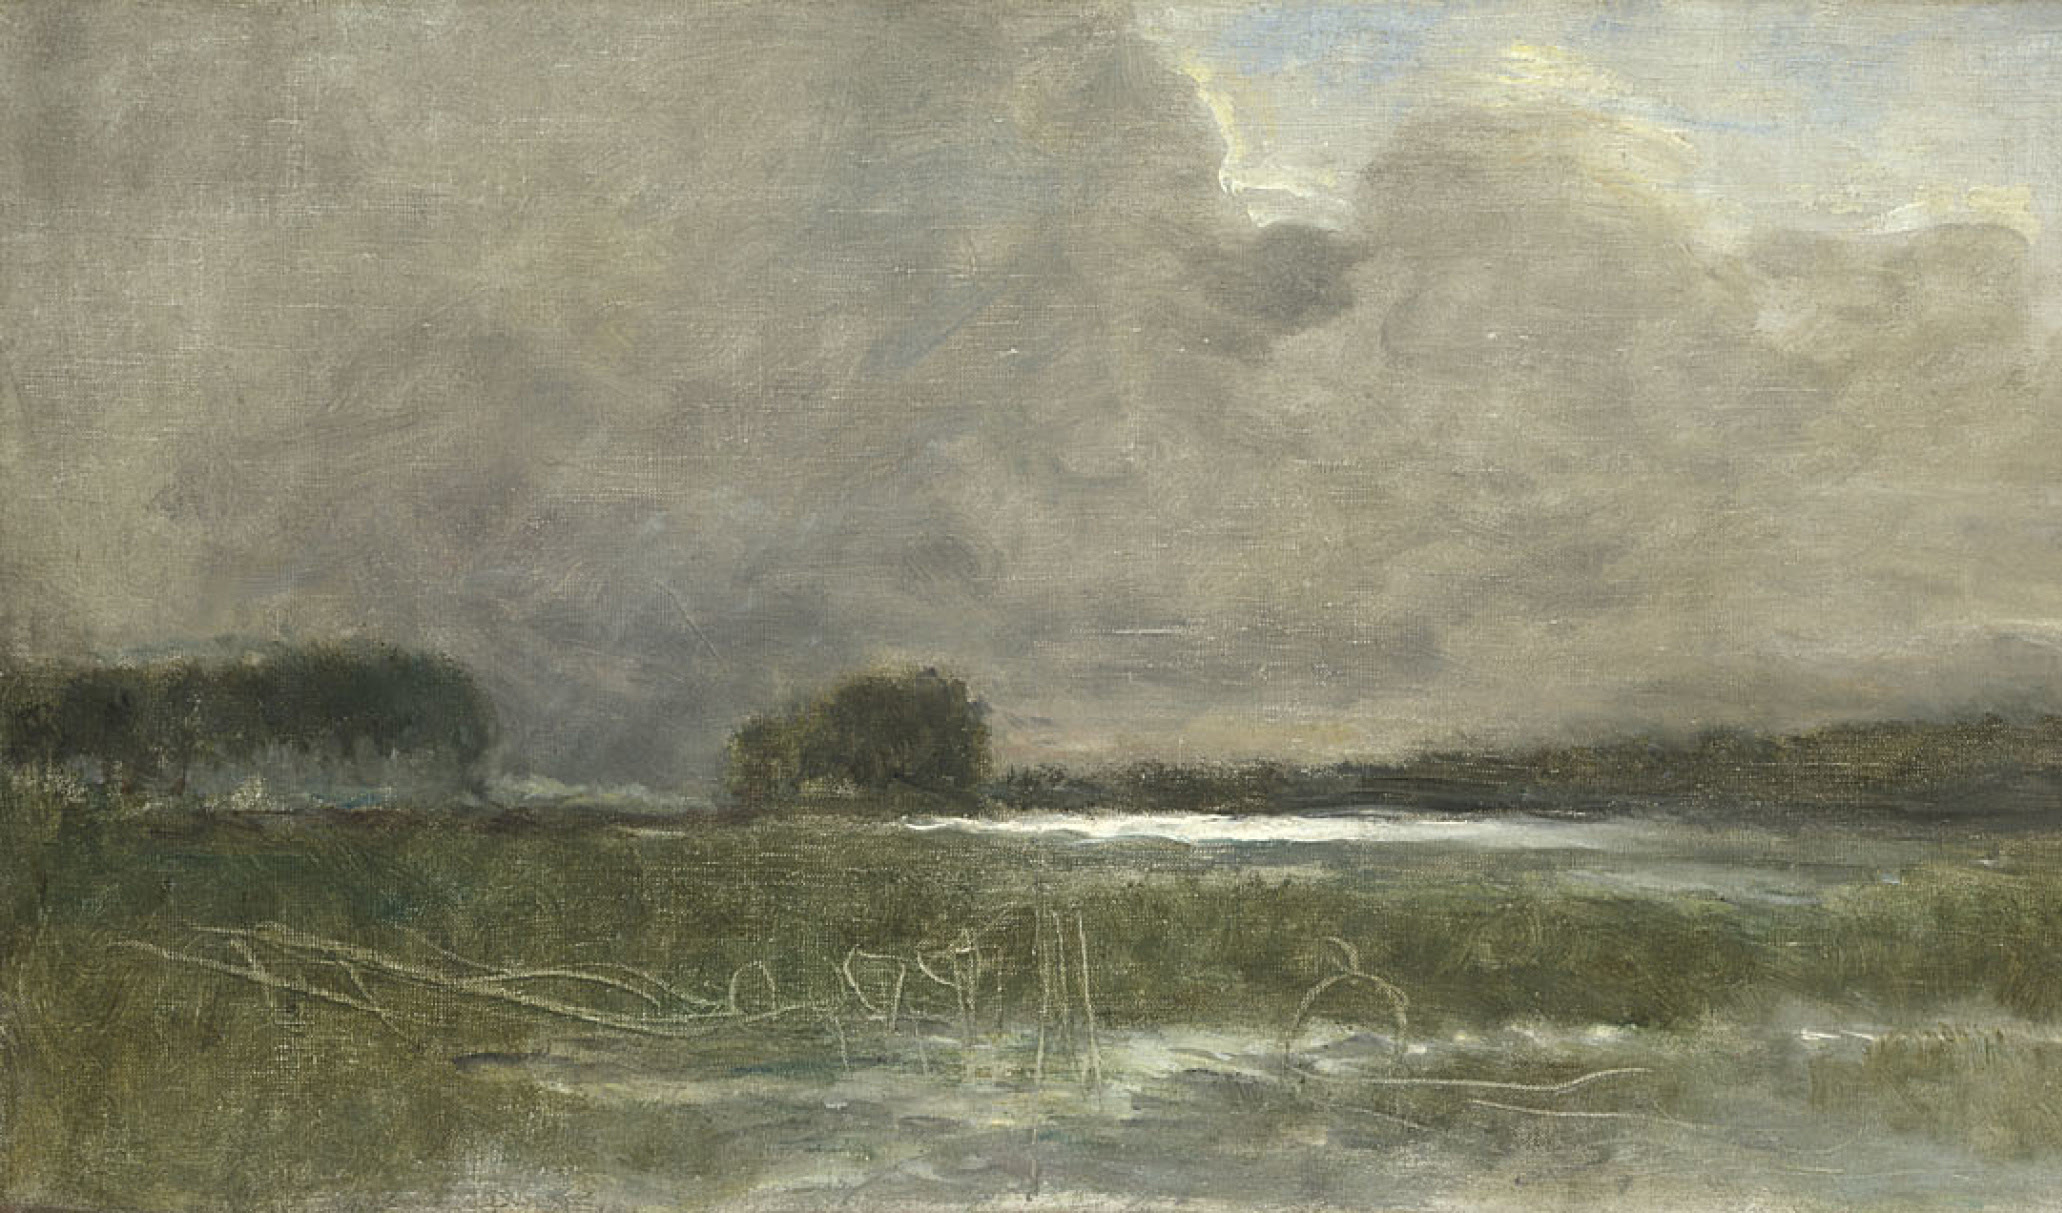 Detail from Jean-Baptiste-Camille Corot, 'The Marsh at Arleux', 1871 © The National Gallery, London